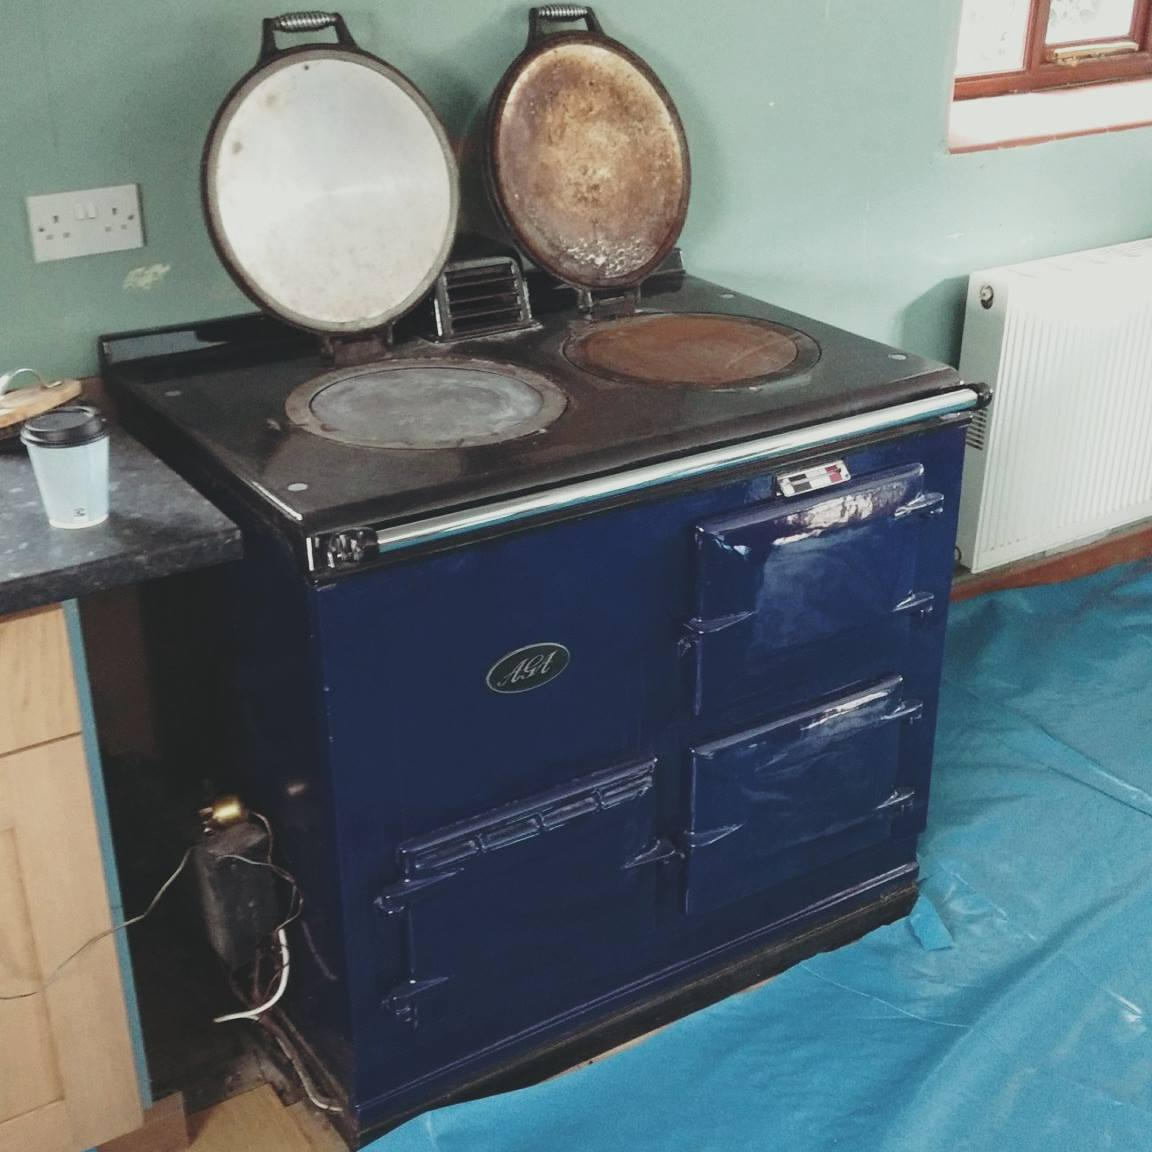 Aga blue dismantled and ready to refurb